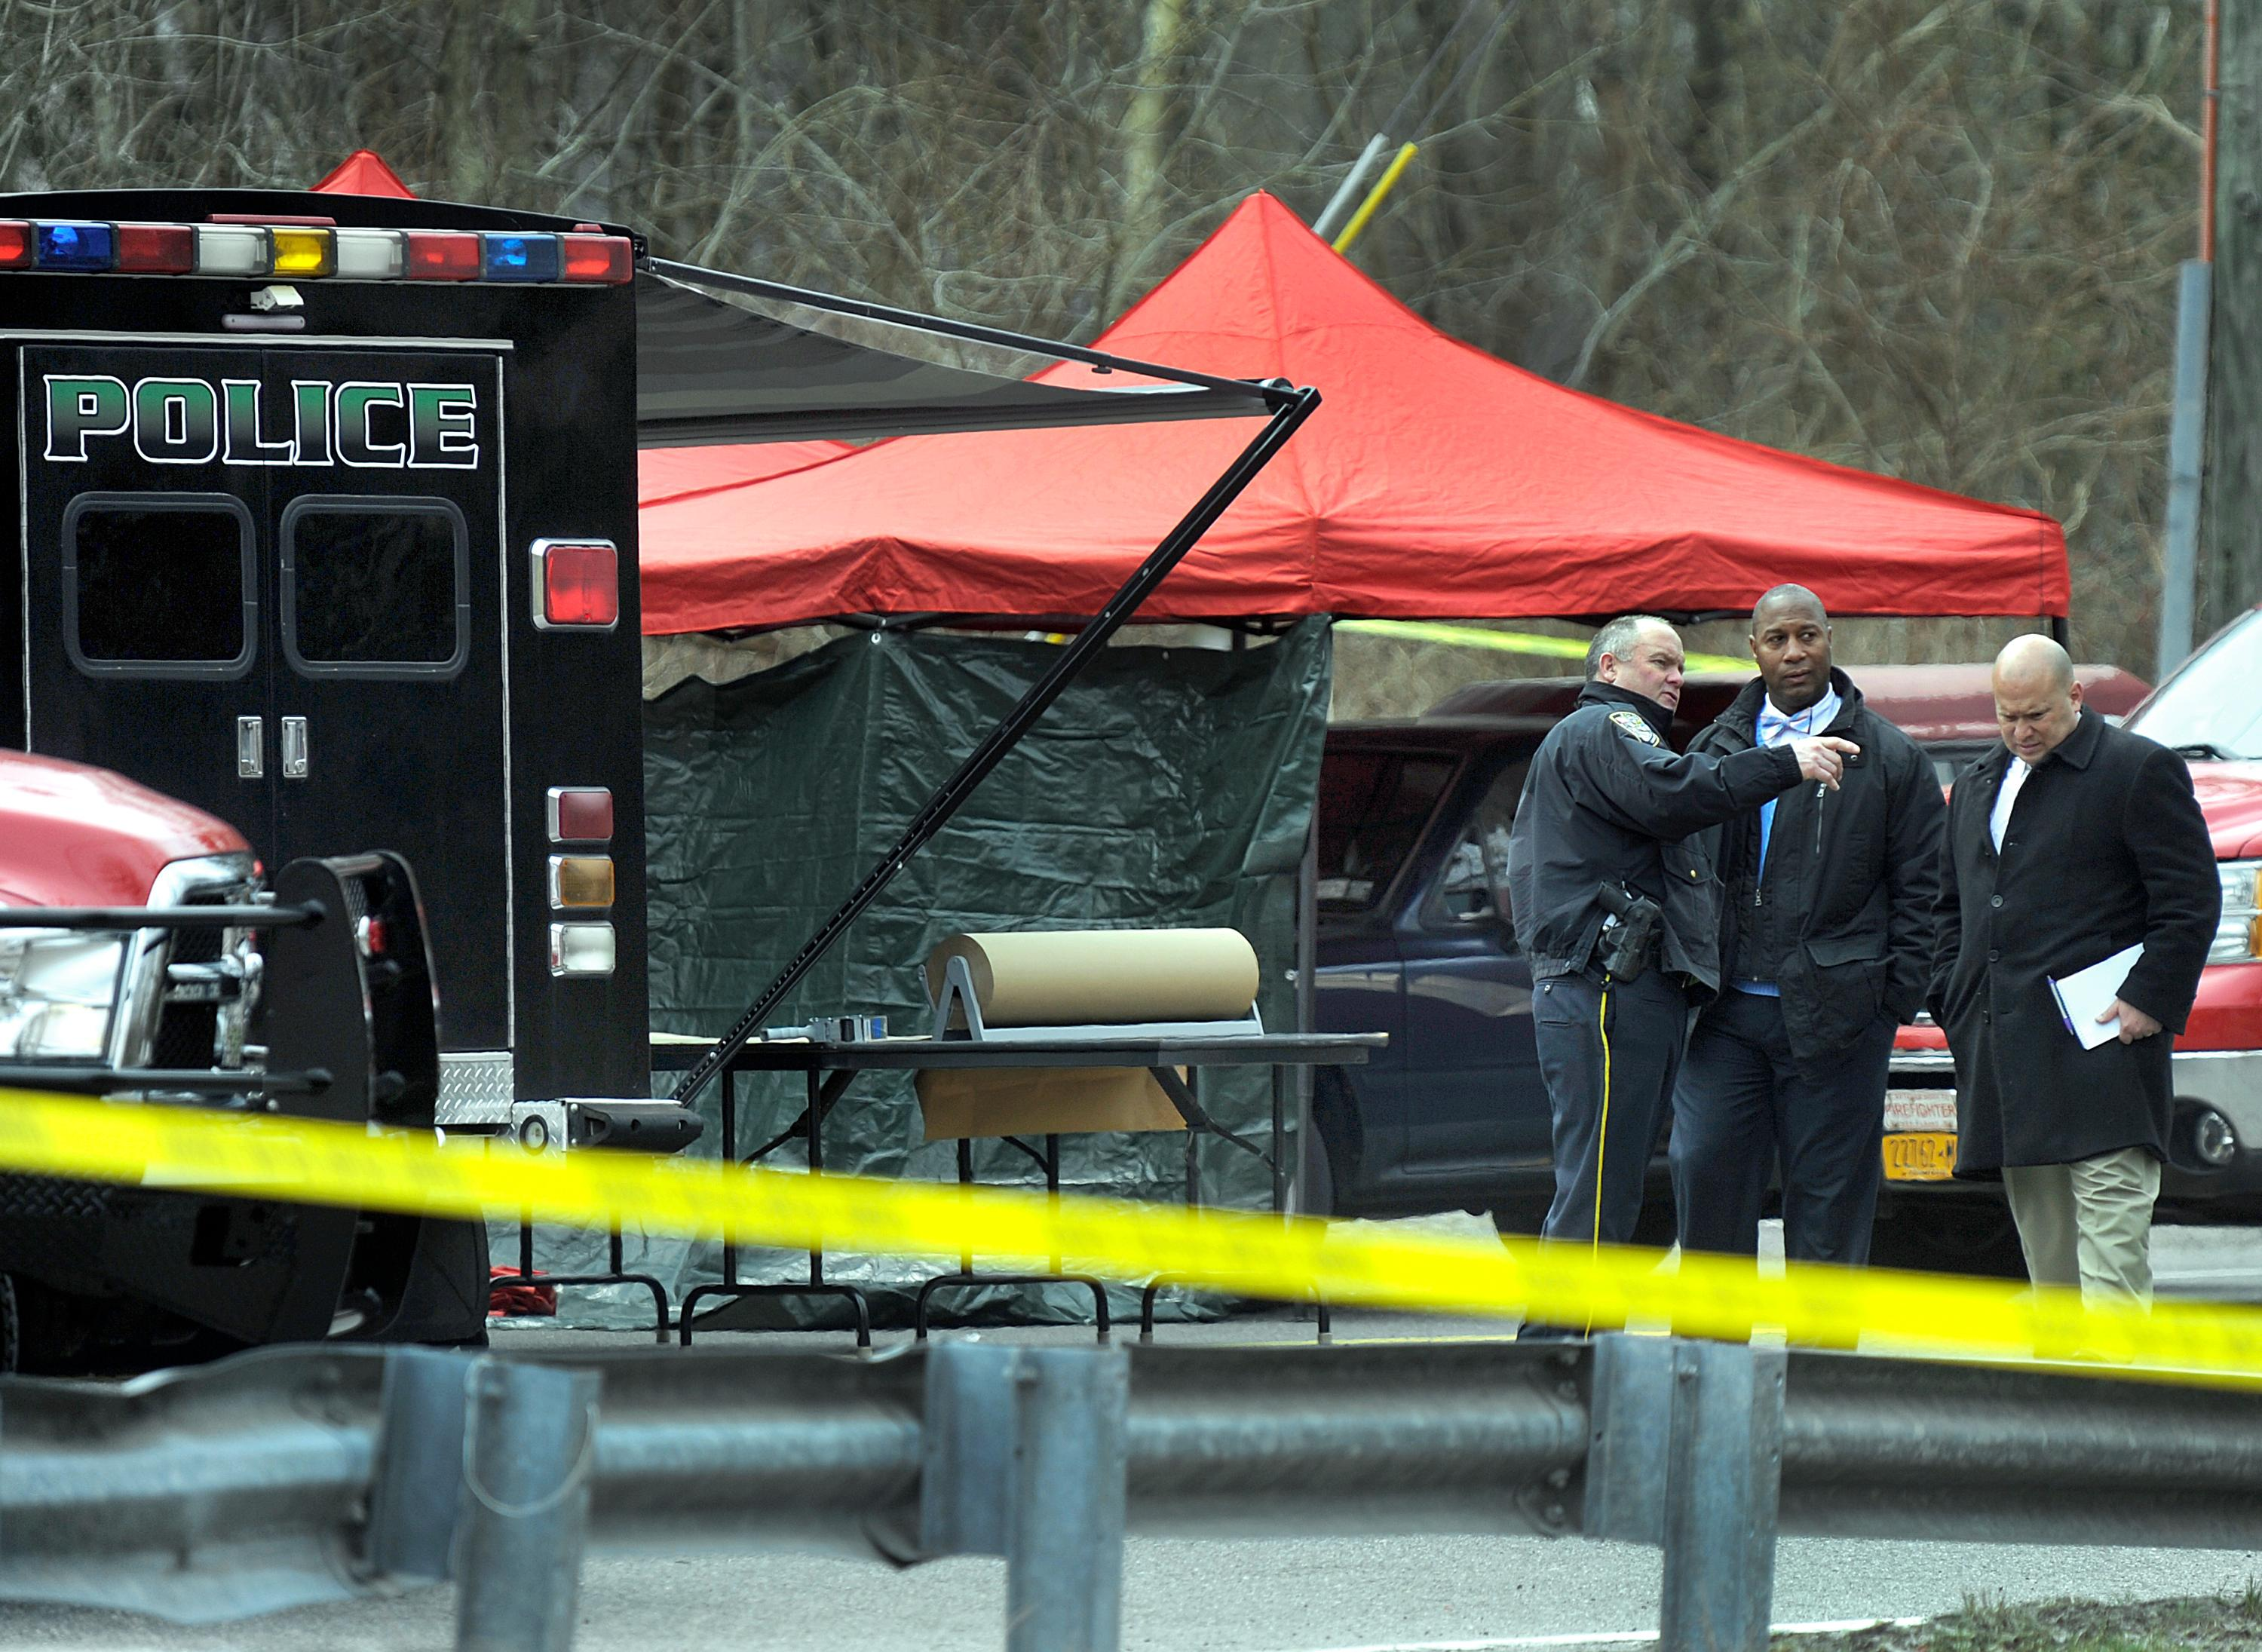 Police work at the scene where a man and a woman were found slain in a pickup truck near the intersection of Routes 55 and 7, Thursday morning, April 12, 2018, in Gaylordsville, Conn. Authorities said the suspect was found dead of a self-inflicted gunshot across the state line in New York. (Carol Kaliff/Hearst Connecticut Media via AP)